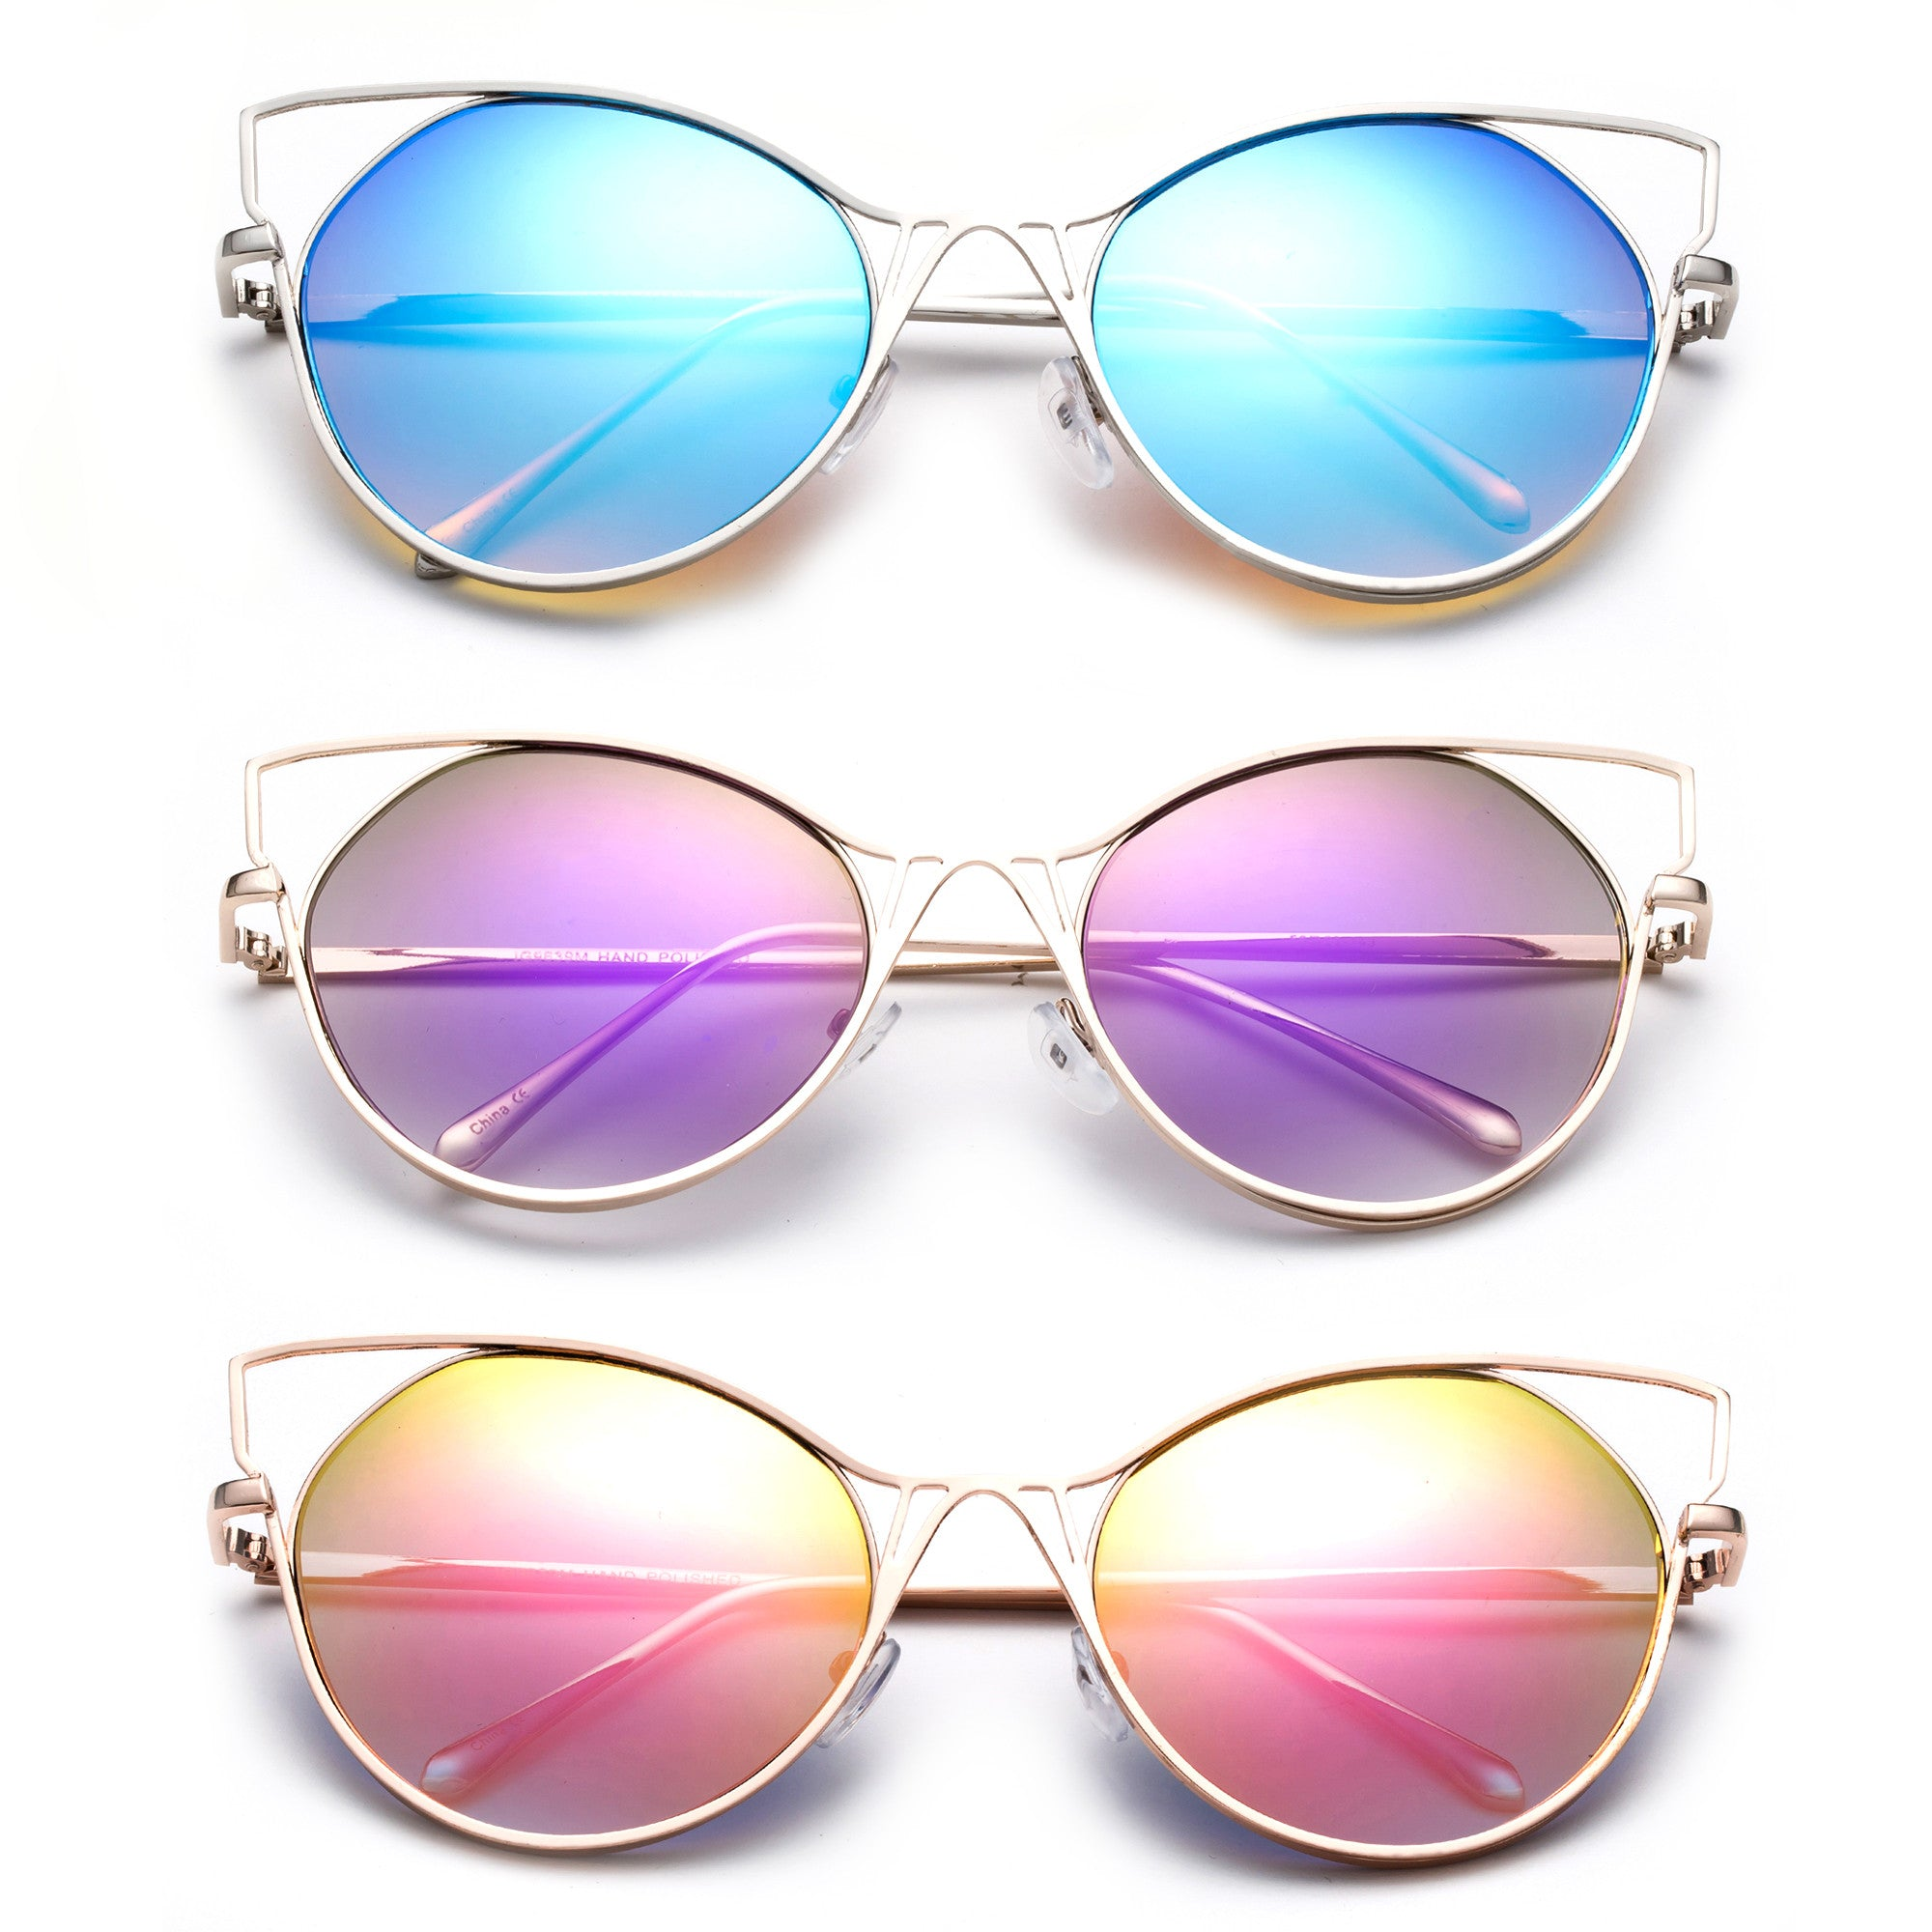 2017 Cateye Style modern look with reflective polarized lenses